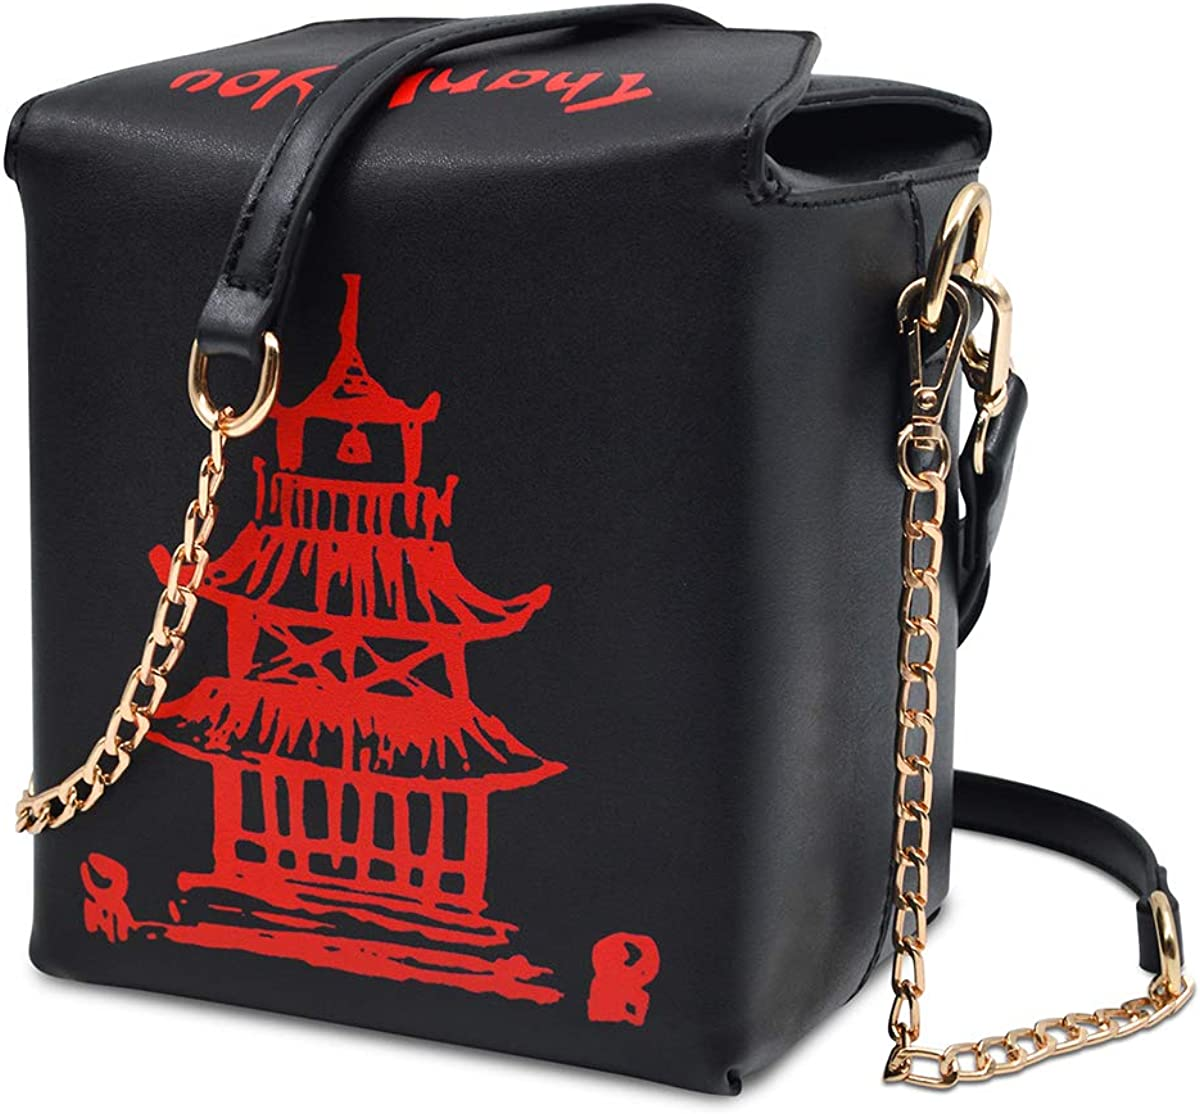 Fashion Crossbody Shoulder Bag, i5 Chinese Takeout Box Purse with Comfortable Chain Strap